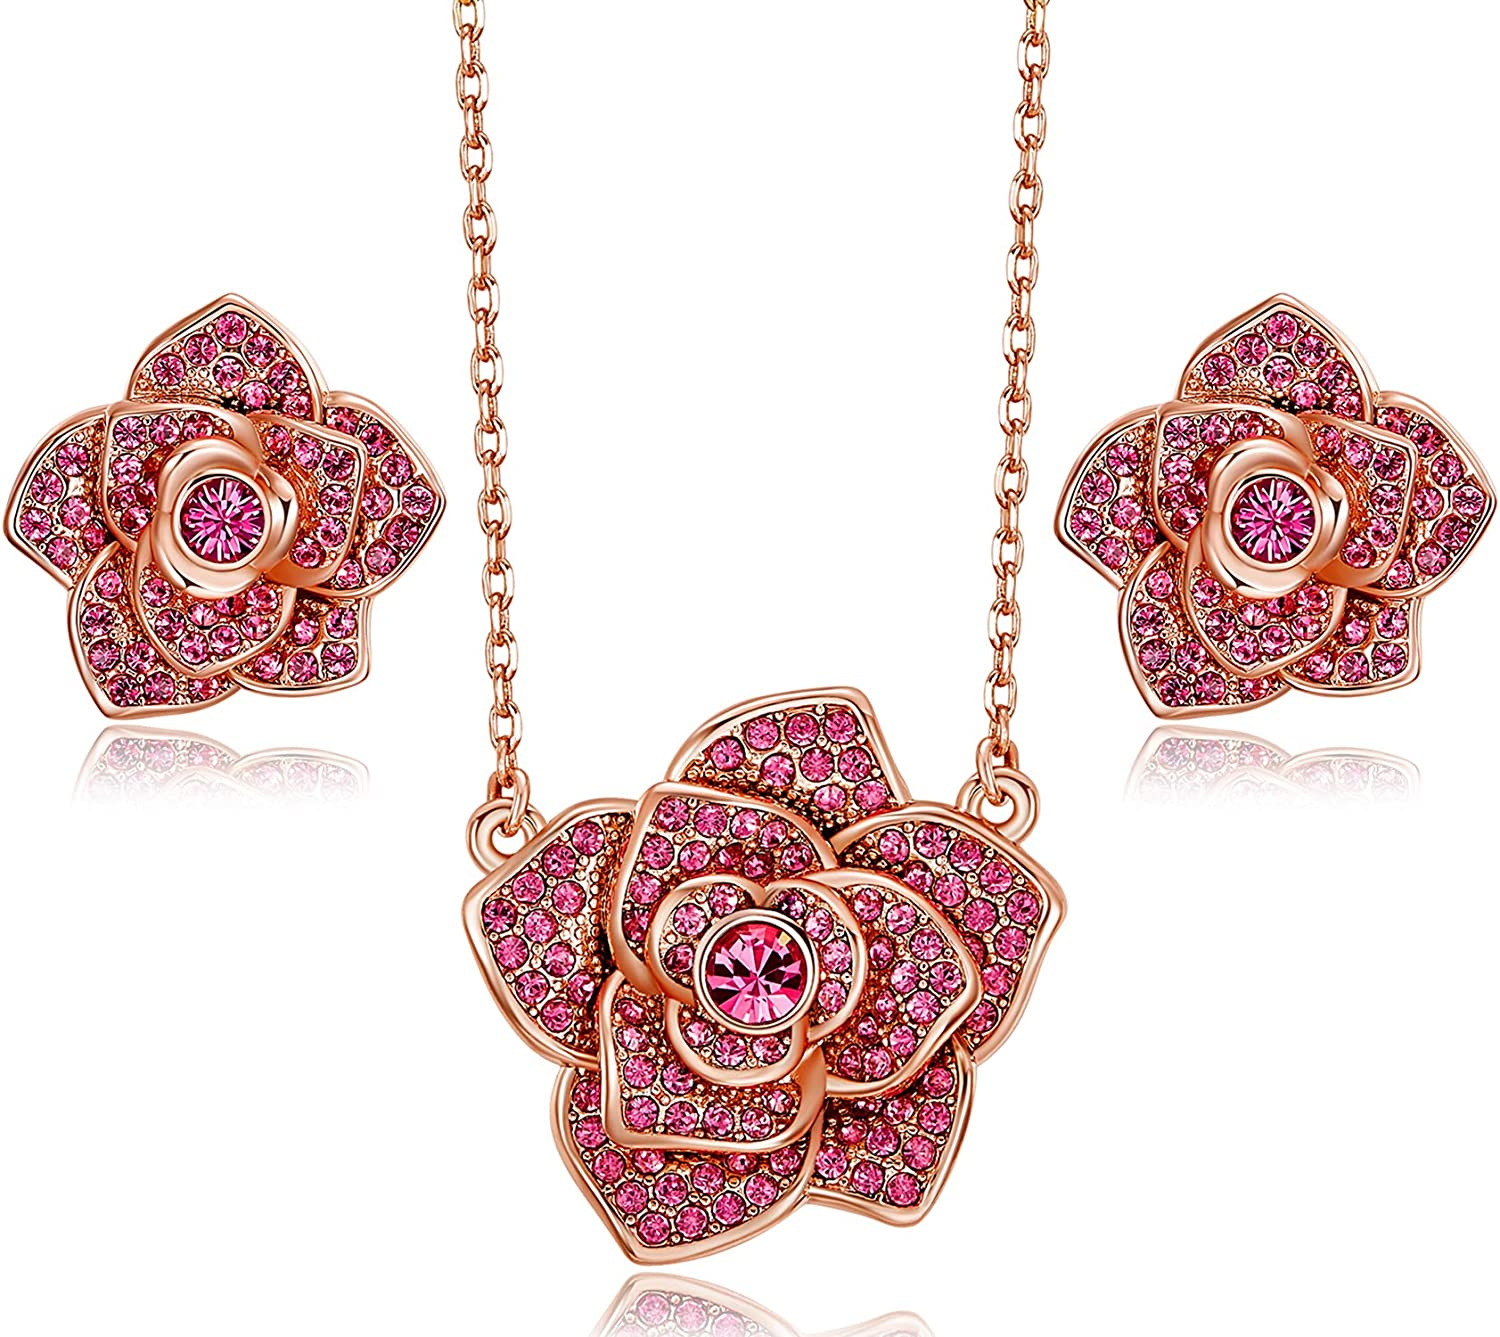 CDE Jewelry Set for Mother's Day Rose Necklace and Earrings Set for Women Girls Necklaces Embellished with Crystals from Swarovski Box